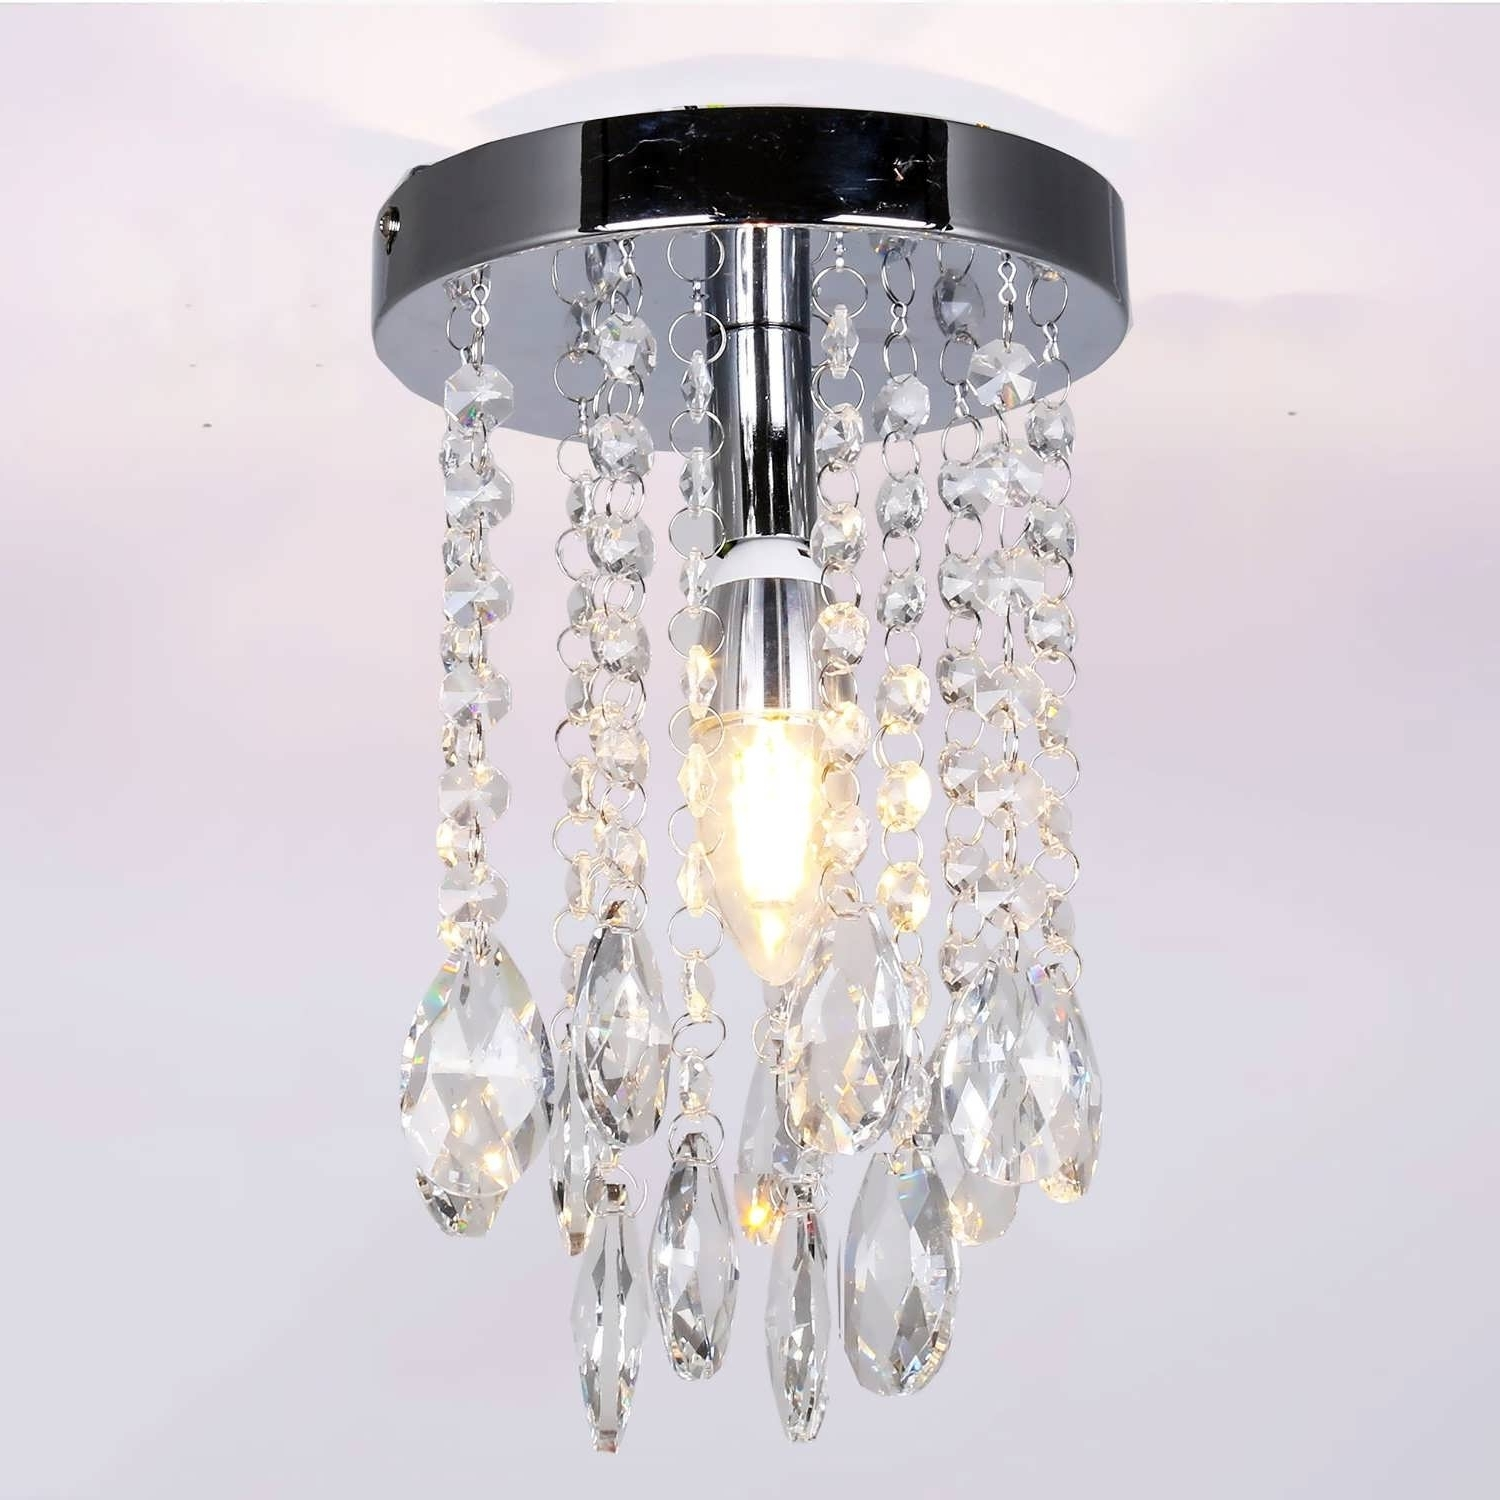 2019 Menards Outdoor Hanging Lights Regarding Light : Rustic Chandeliers Crystal Chandelier Kids Room Gold Baby (View 2 of 20)